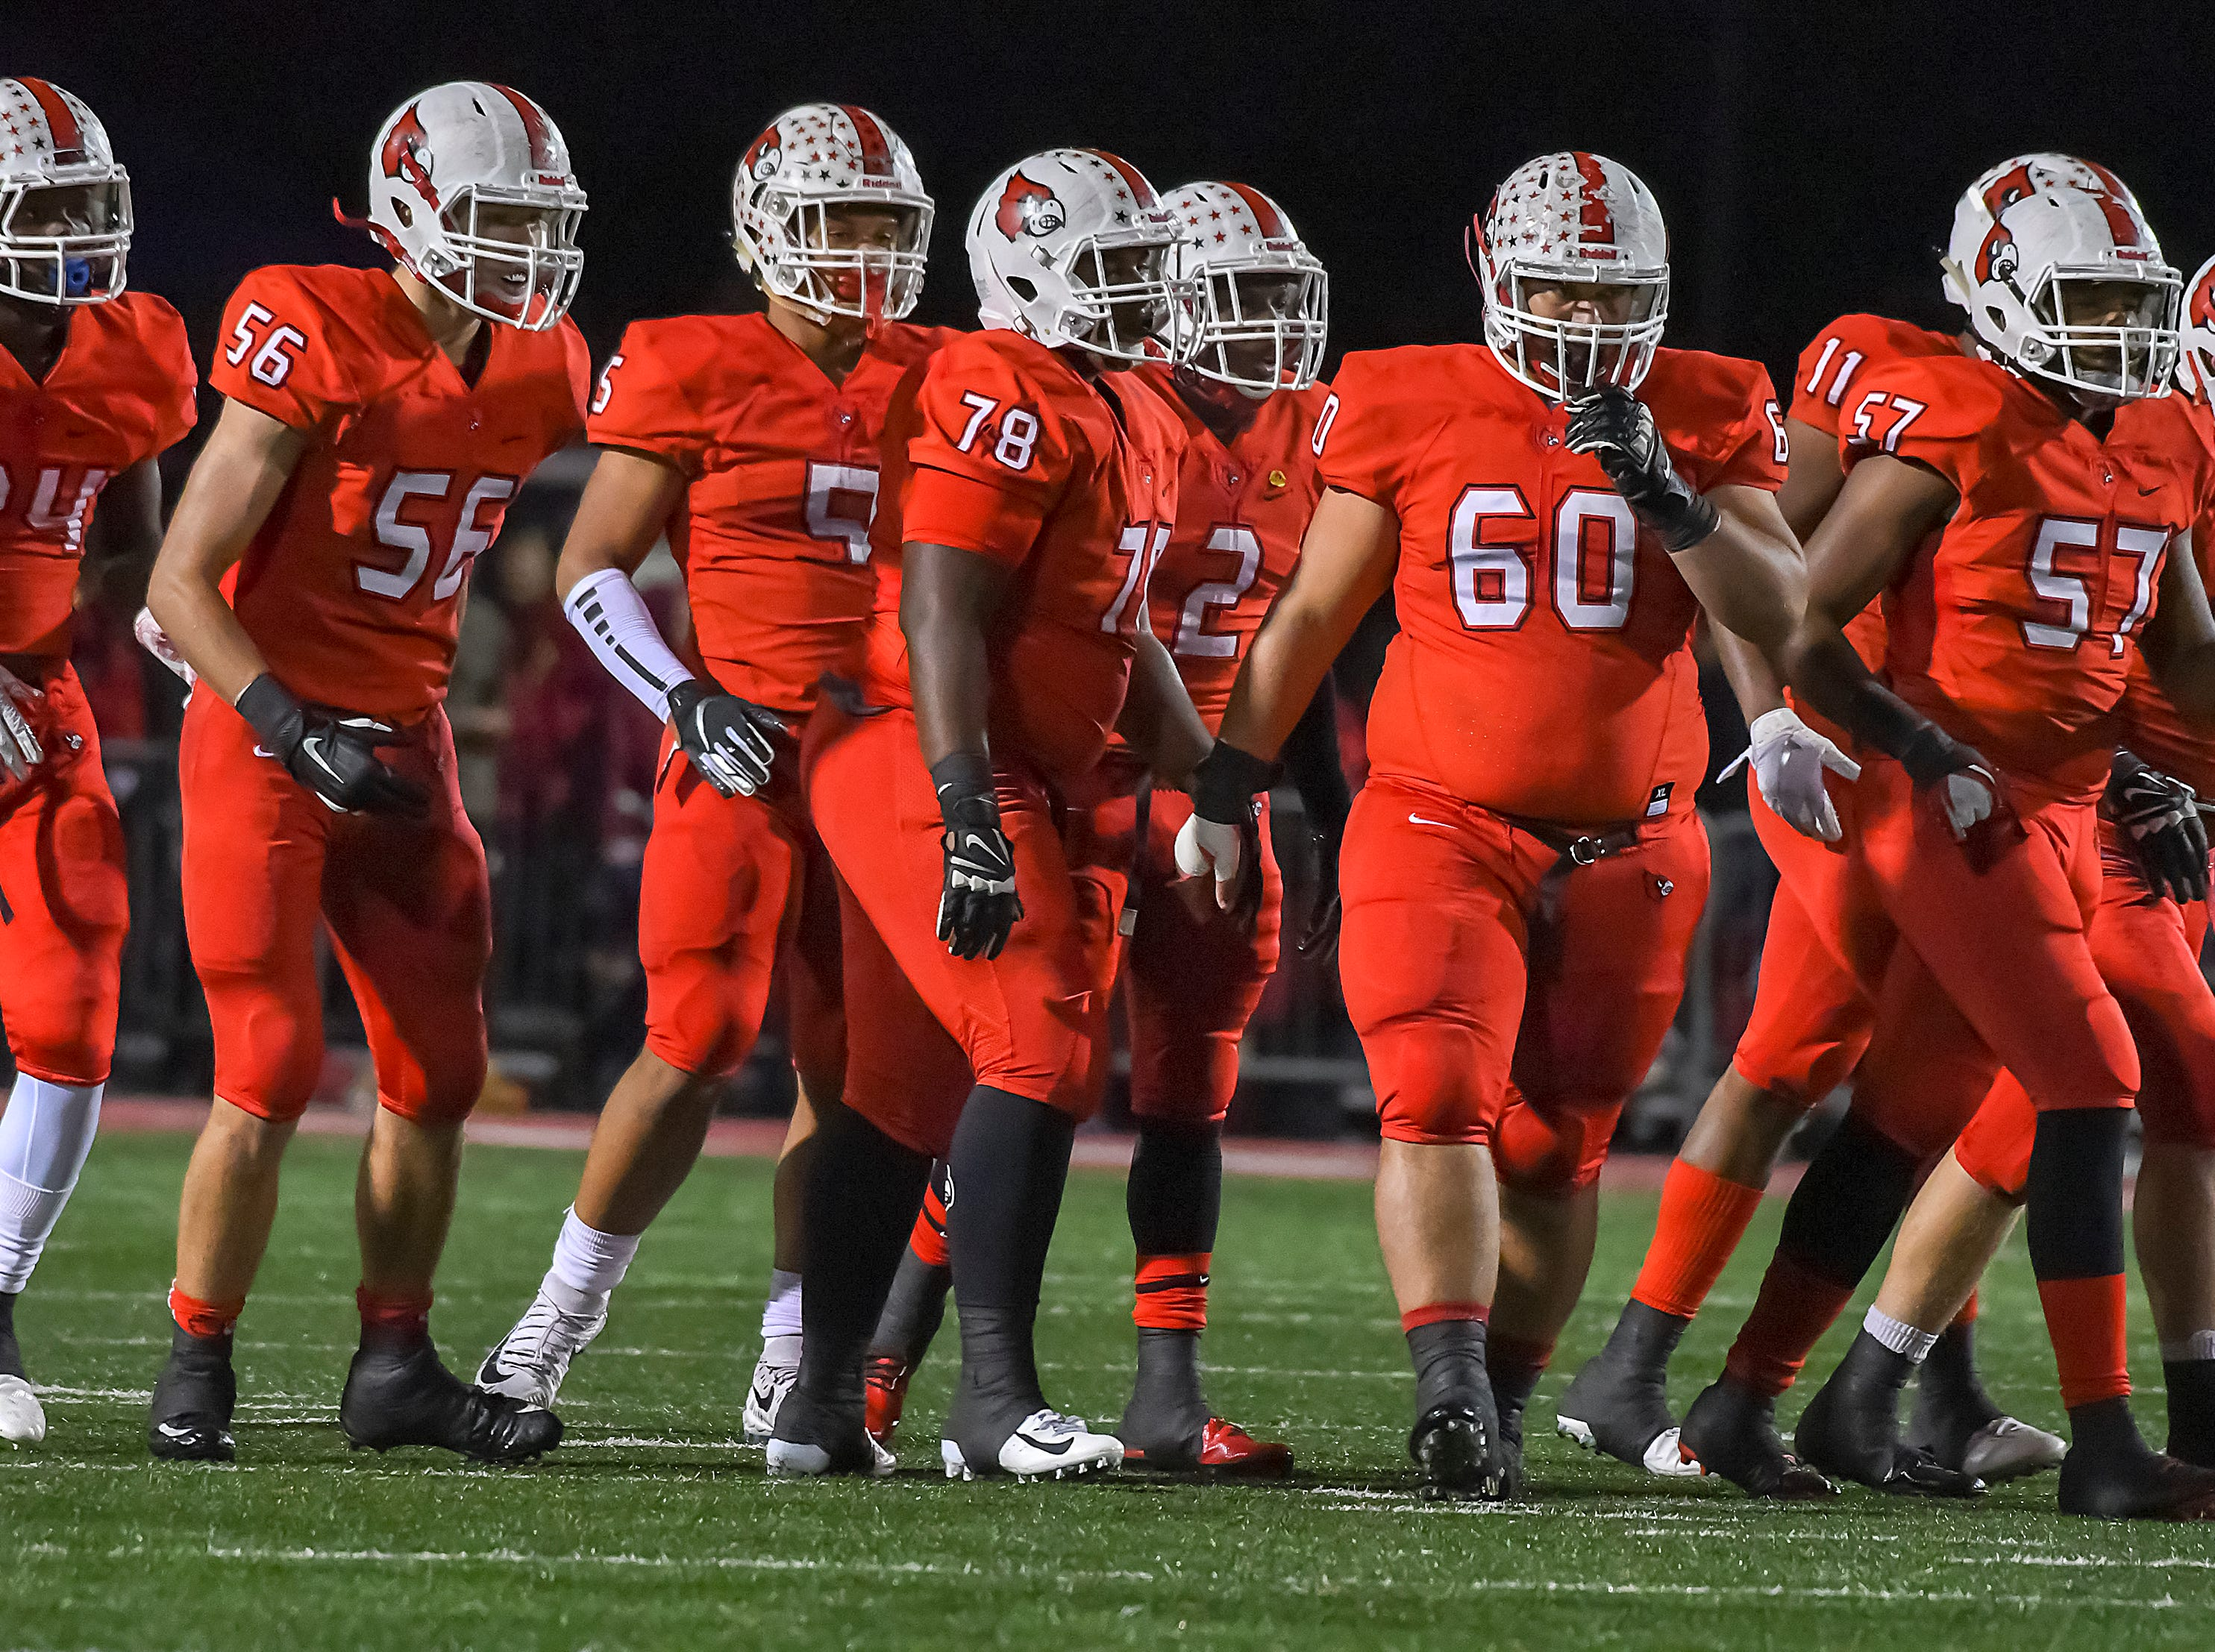 The Cardinal offense breaks the huddle in the OHSAA DI Region 4 Playoffs at Colerain High School,  Friday Nov. 2, 2018